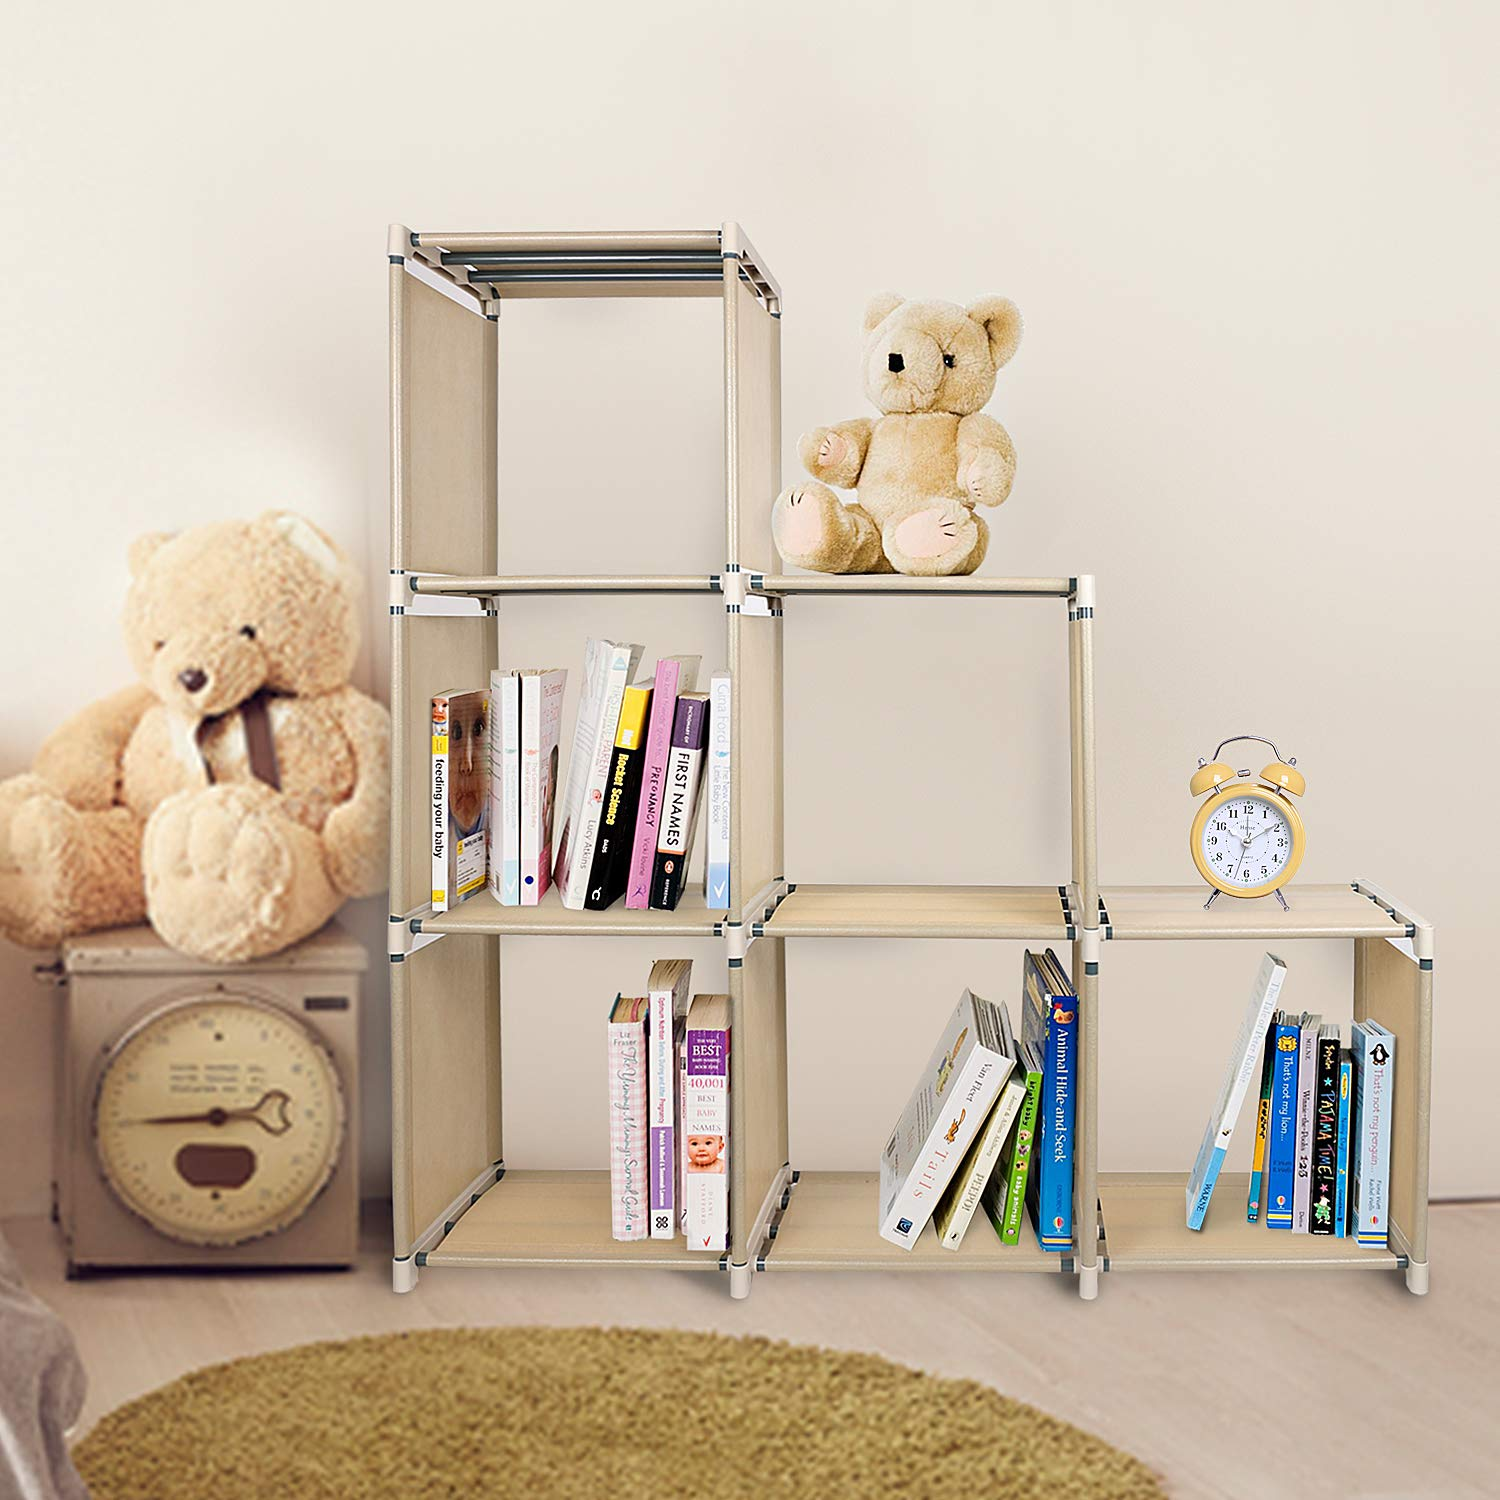 Azadx 6 Cube Storage Shelves, DIY Modular Closet Organizer Unit and Bookshelf Cabinet for Clothes, Toys, Books and Shoes